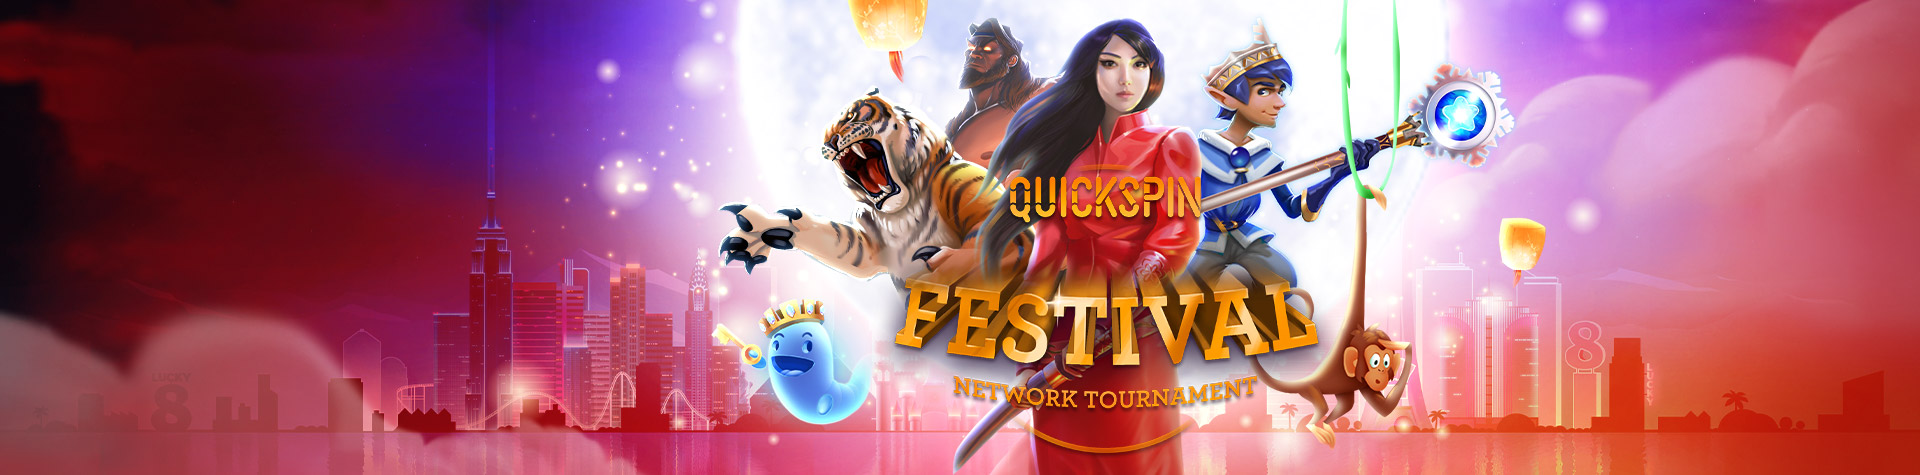 QuickspinNetworkTournament BG 1920x475